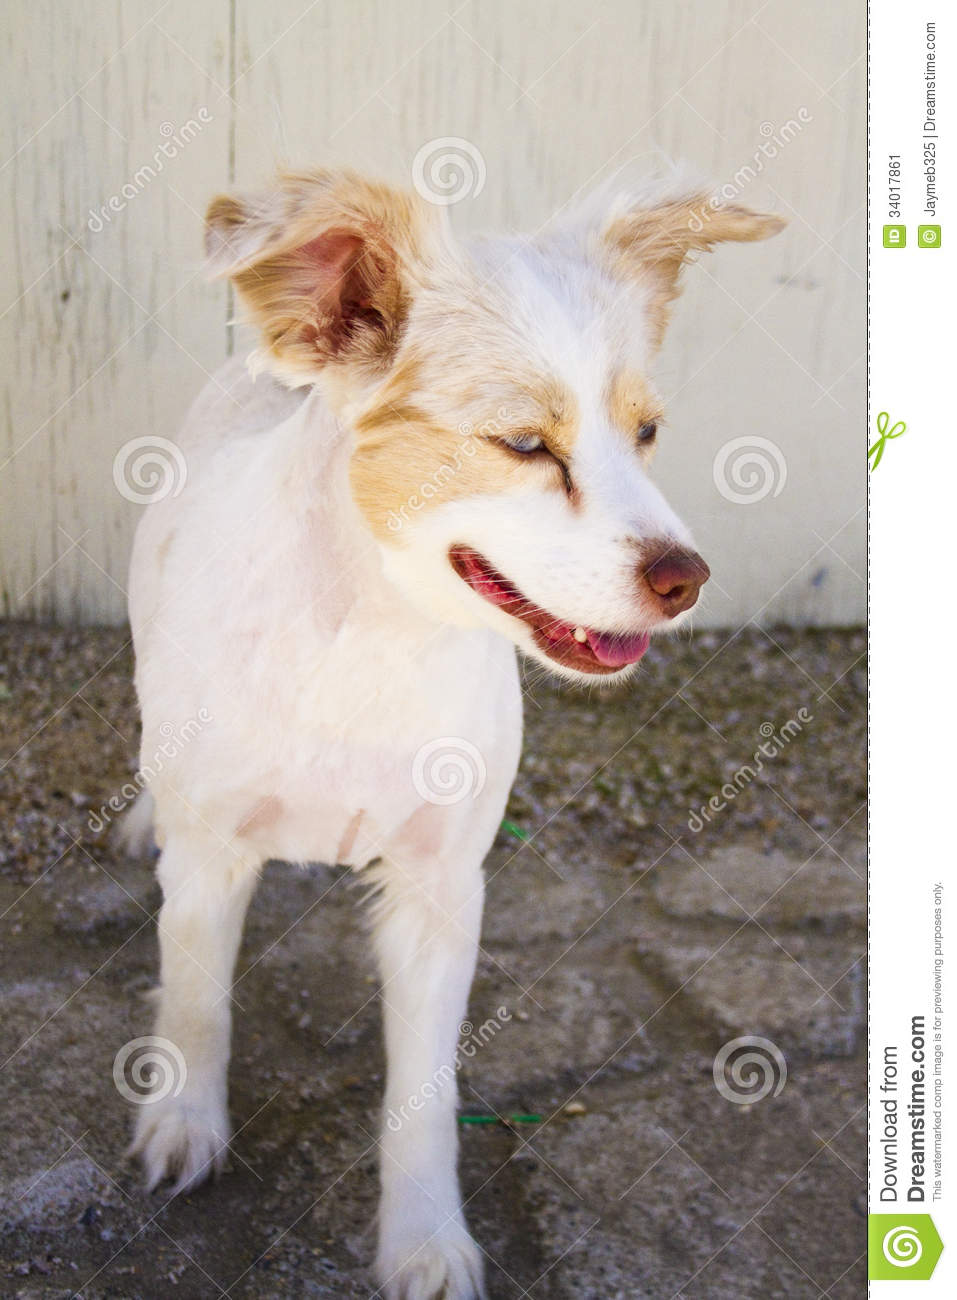 Dog Haircut Stock Image Image Of Dogs Shorne Outdoors 34017861